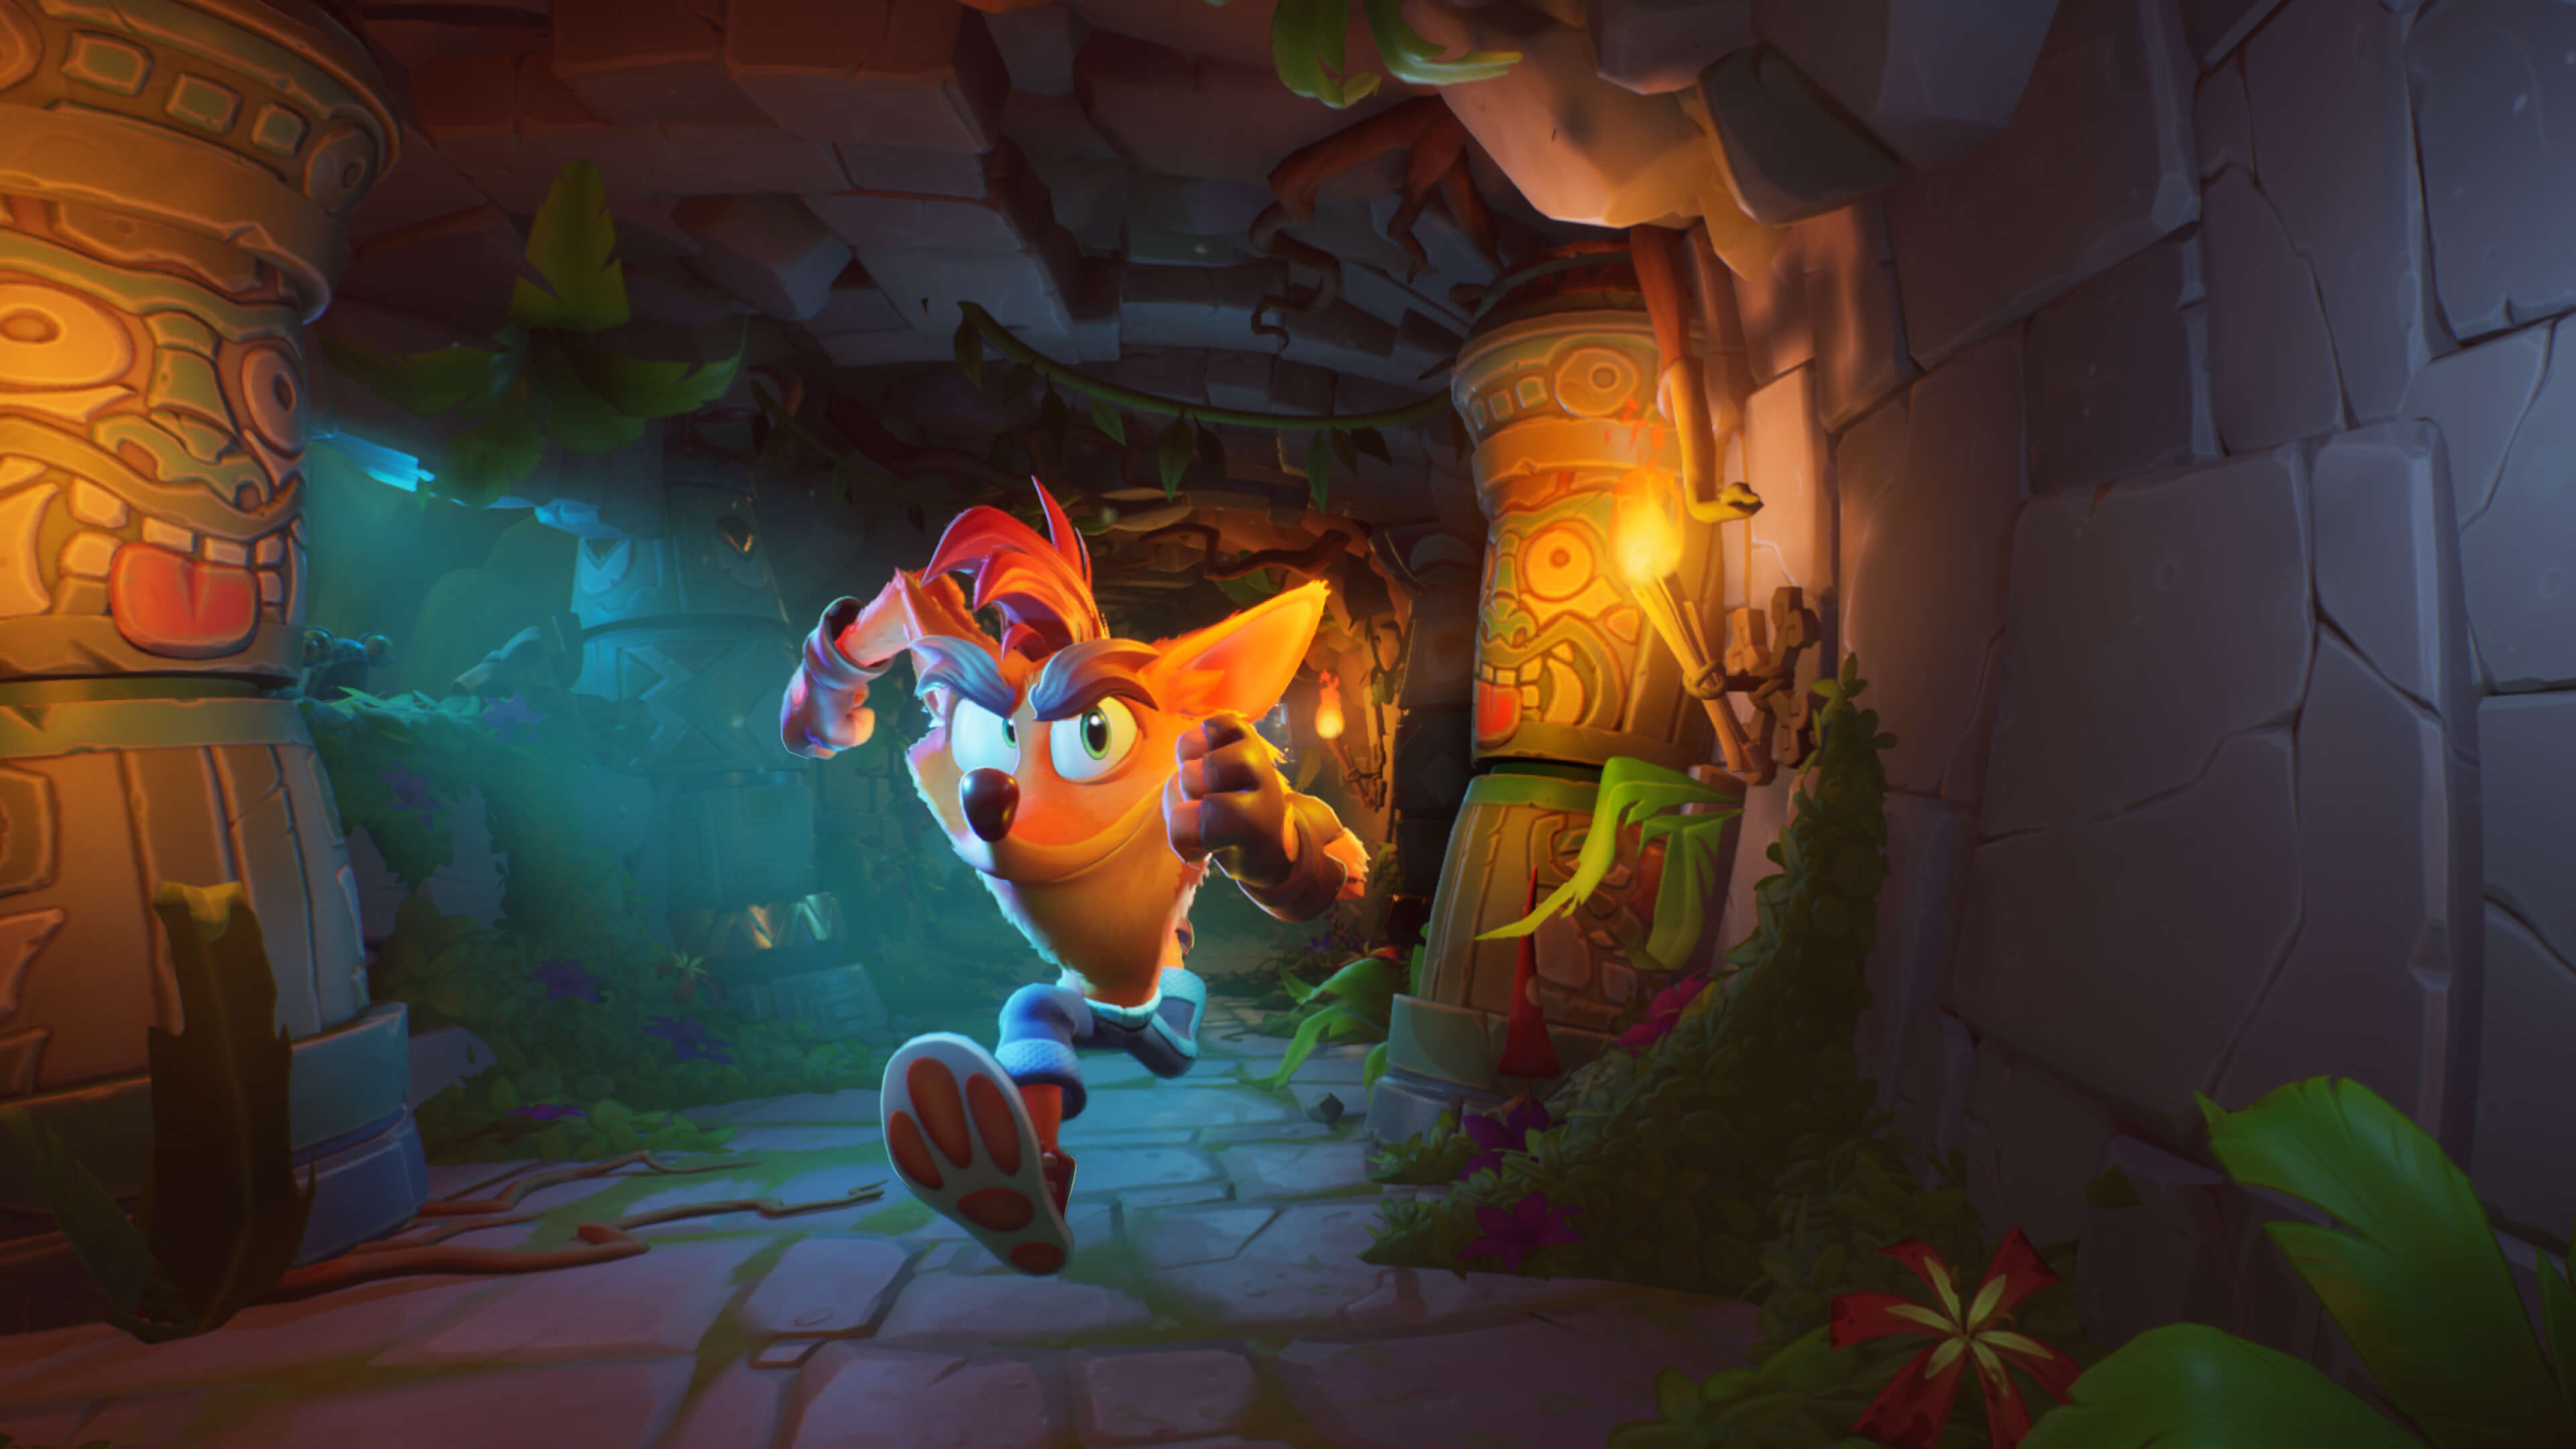 《Crash Bandicoot 4:It's About Time》宣布追加登陆 Playstation 5 平台,预定在 3 月 12 日推出。